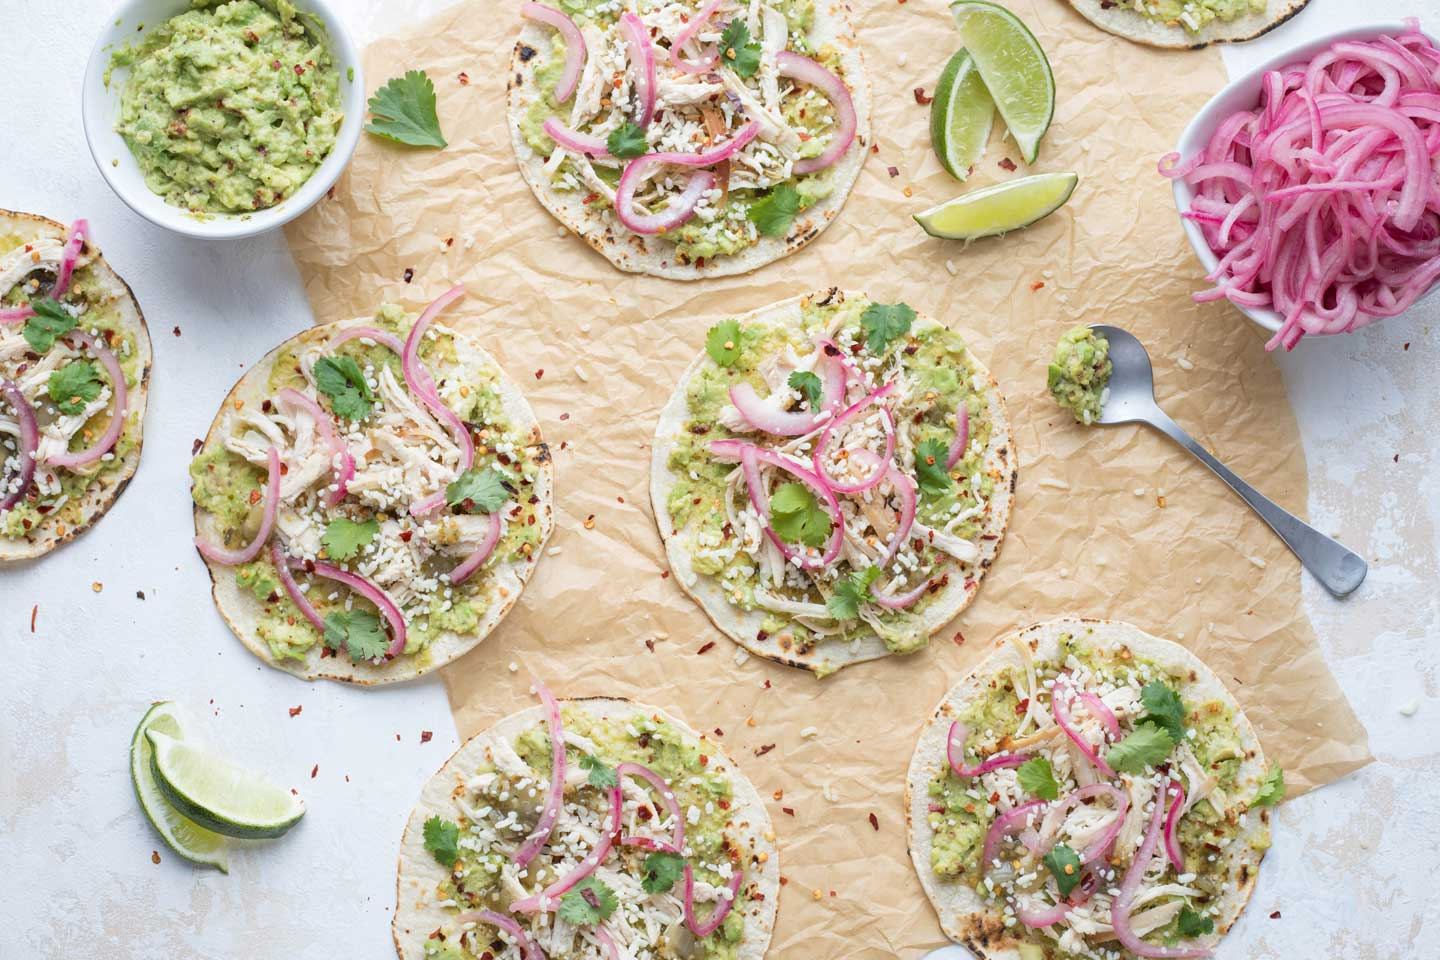 Looking for make-ahead meal recipes? The whole family will love these super-easy tacos. And you'll love how easy they are to make! You can even prep them completely ahead! Bonus: it all begins with a store-bought rotisserie chicken. How easy is that?!?!